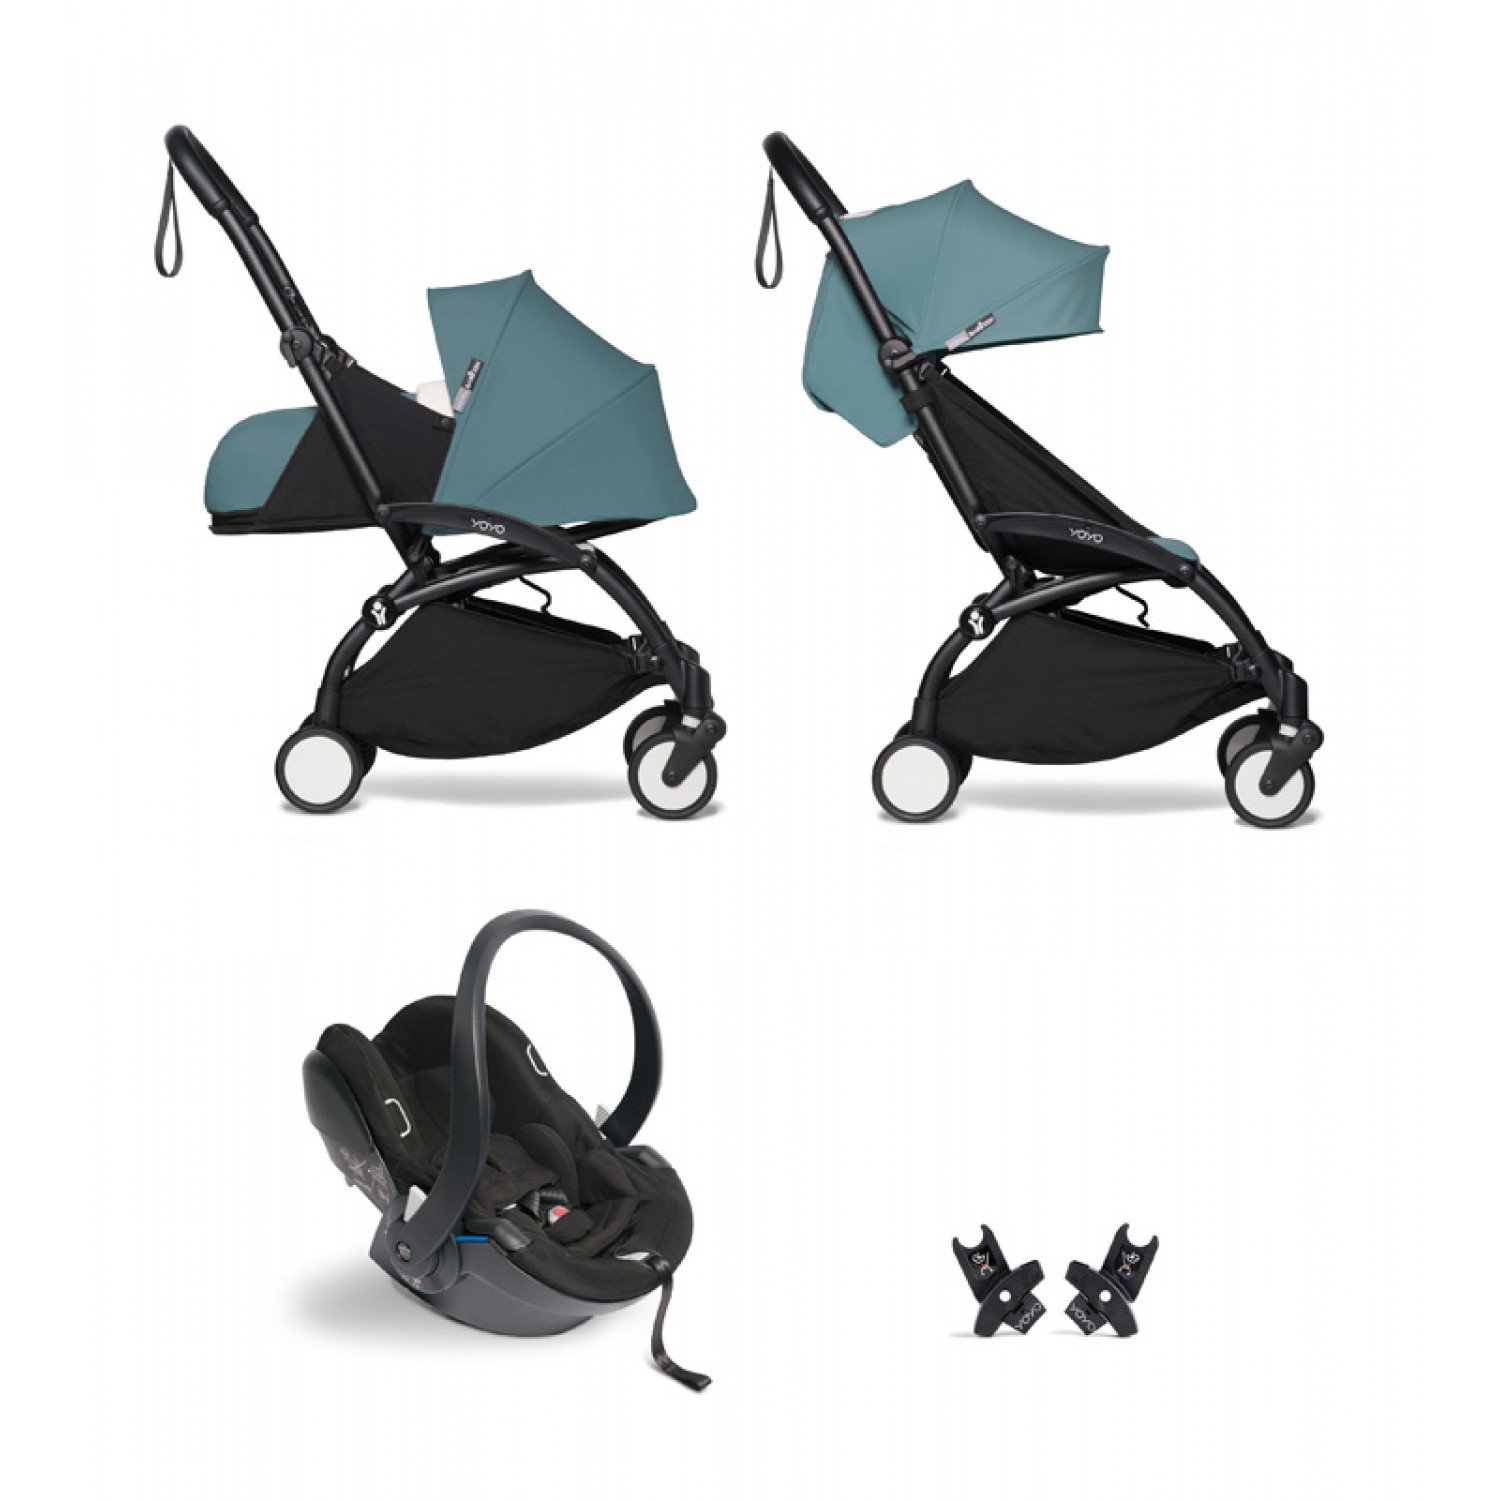 All-in-one BABYZEN stroller YOYO2 0+, car seat and 6+ | Black Chassis Aqua